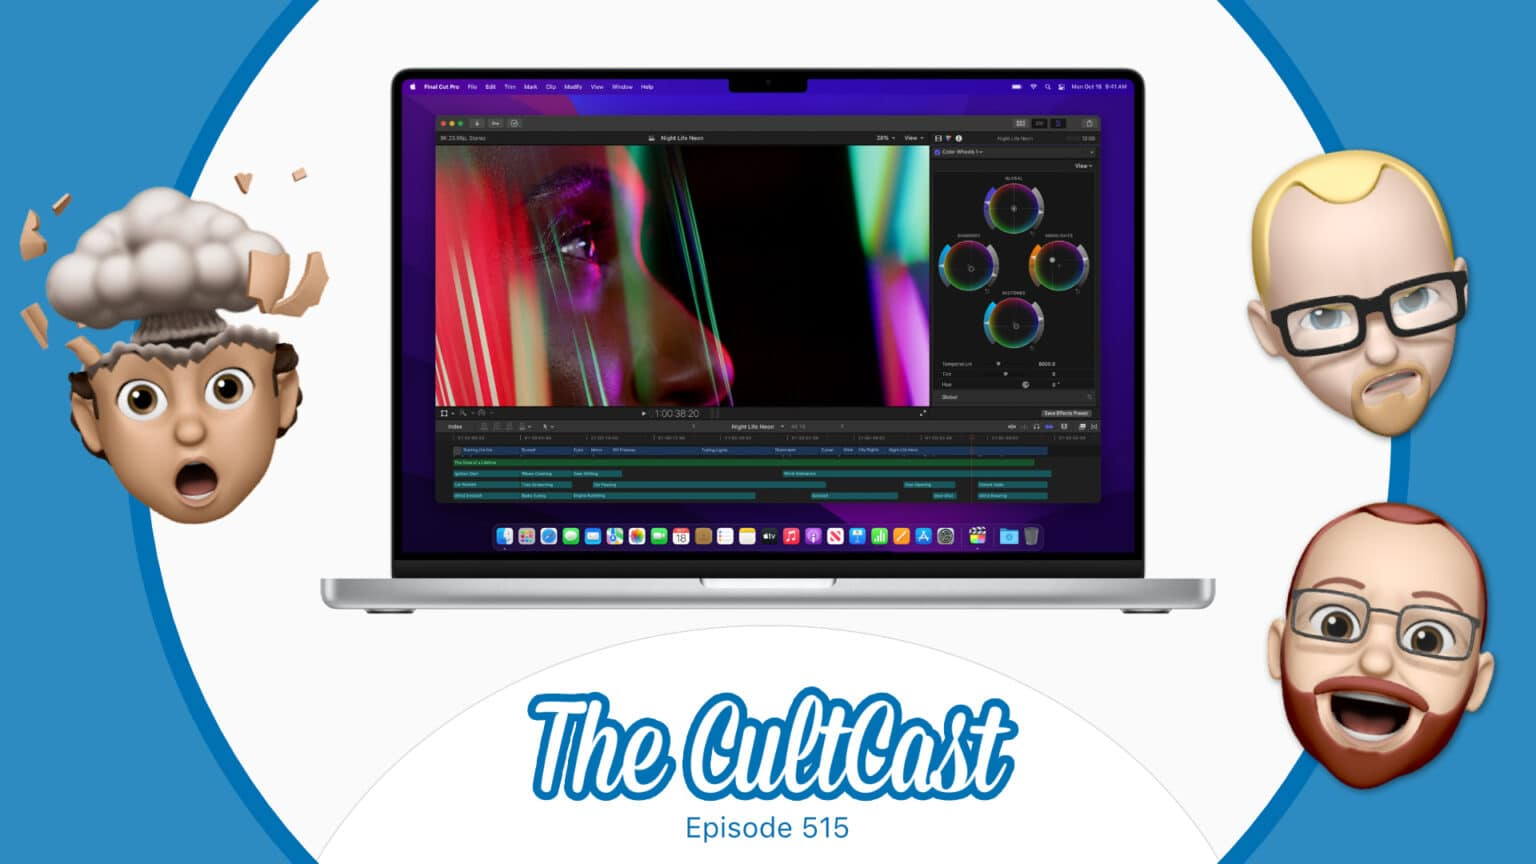 The CultCast 515: We can't stop gushing about the new M1 Max MacBook Pros.